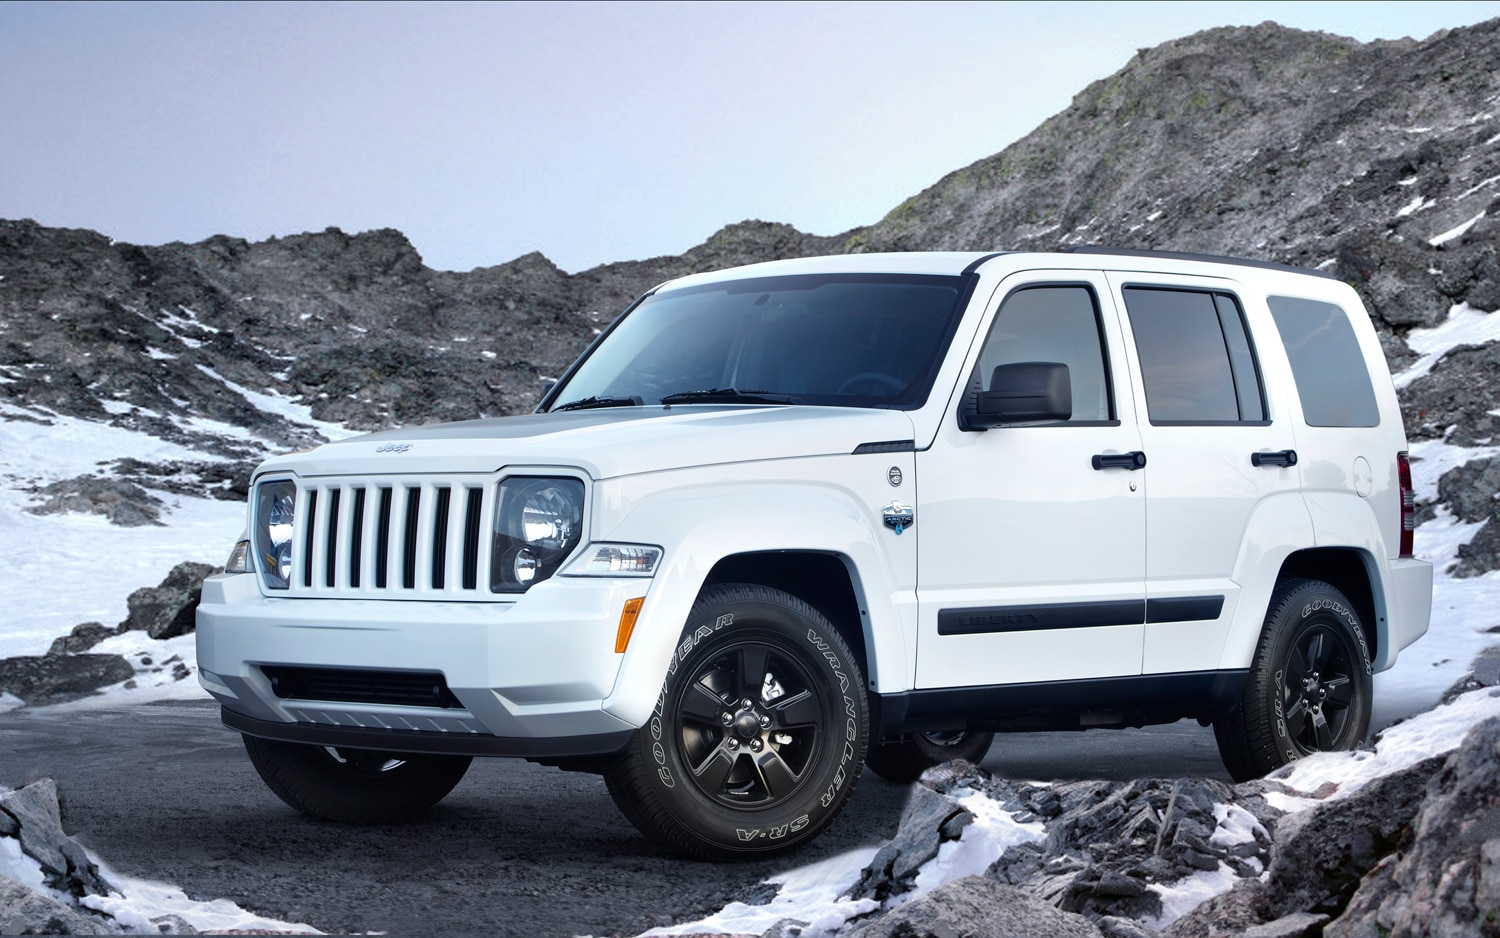 2012 Jeep Liberty Arctic Front Three Quarter11